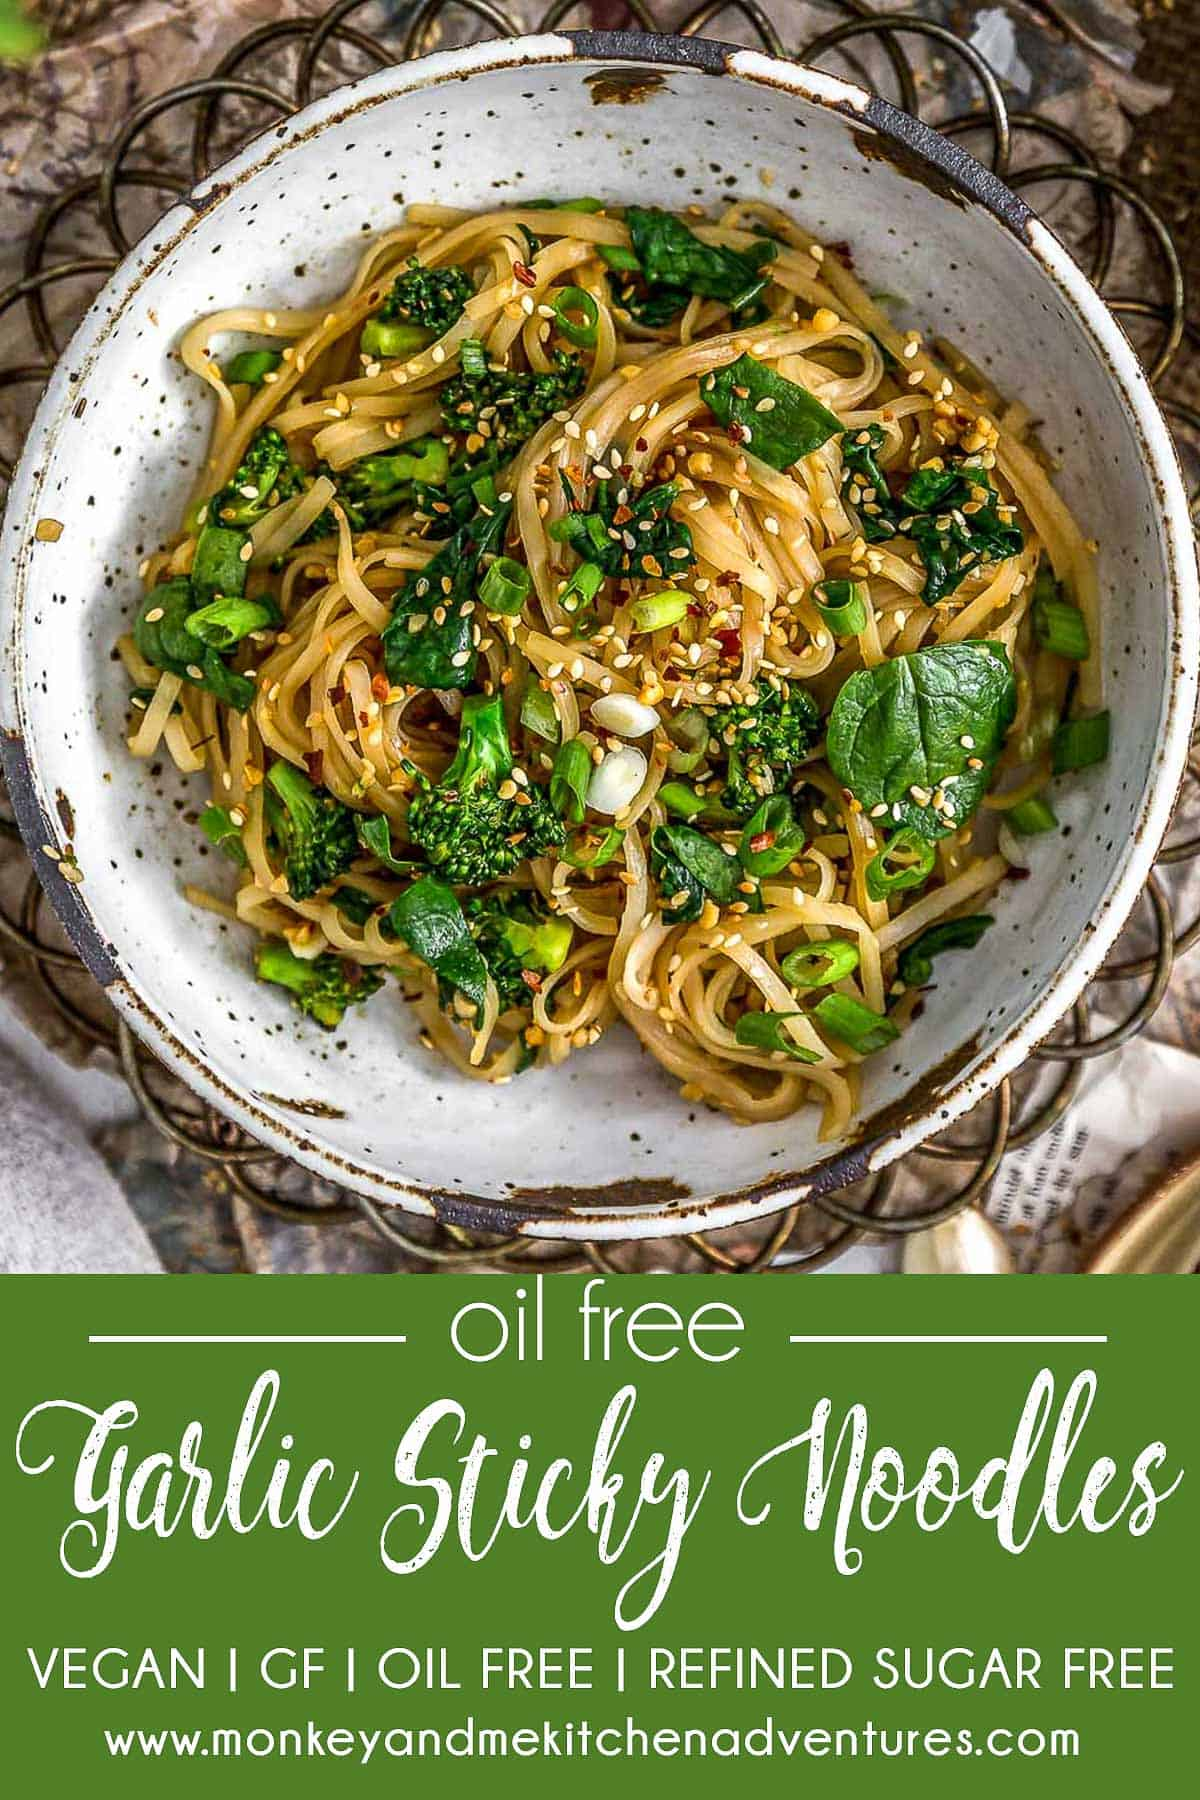 Oil Free Garlic Sticky Noodles with text description